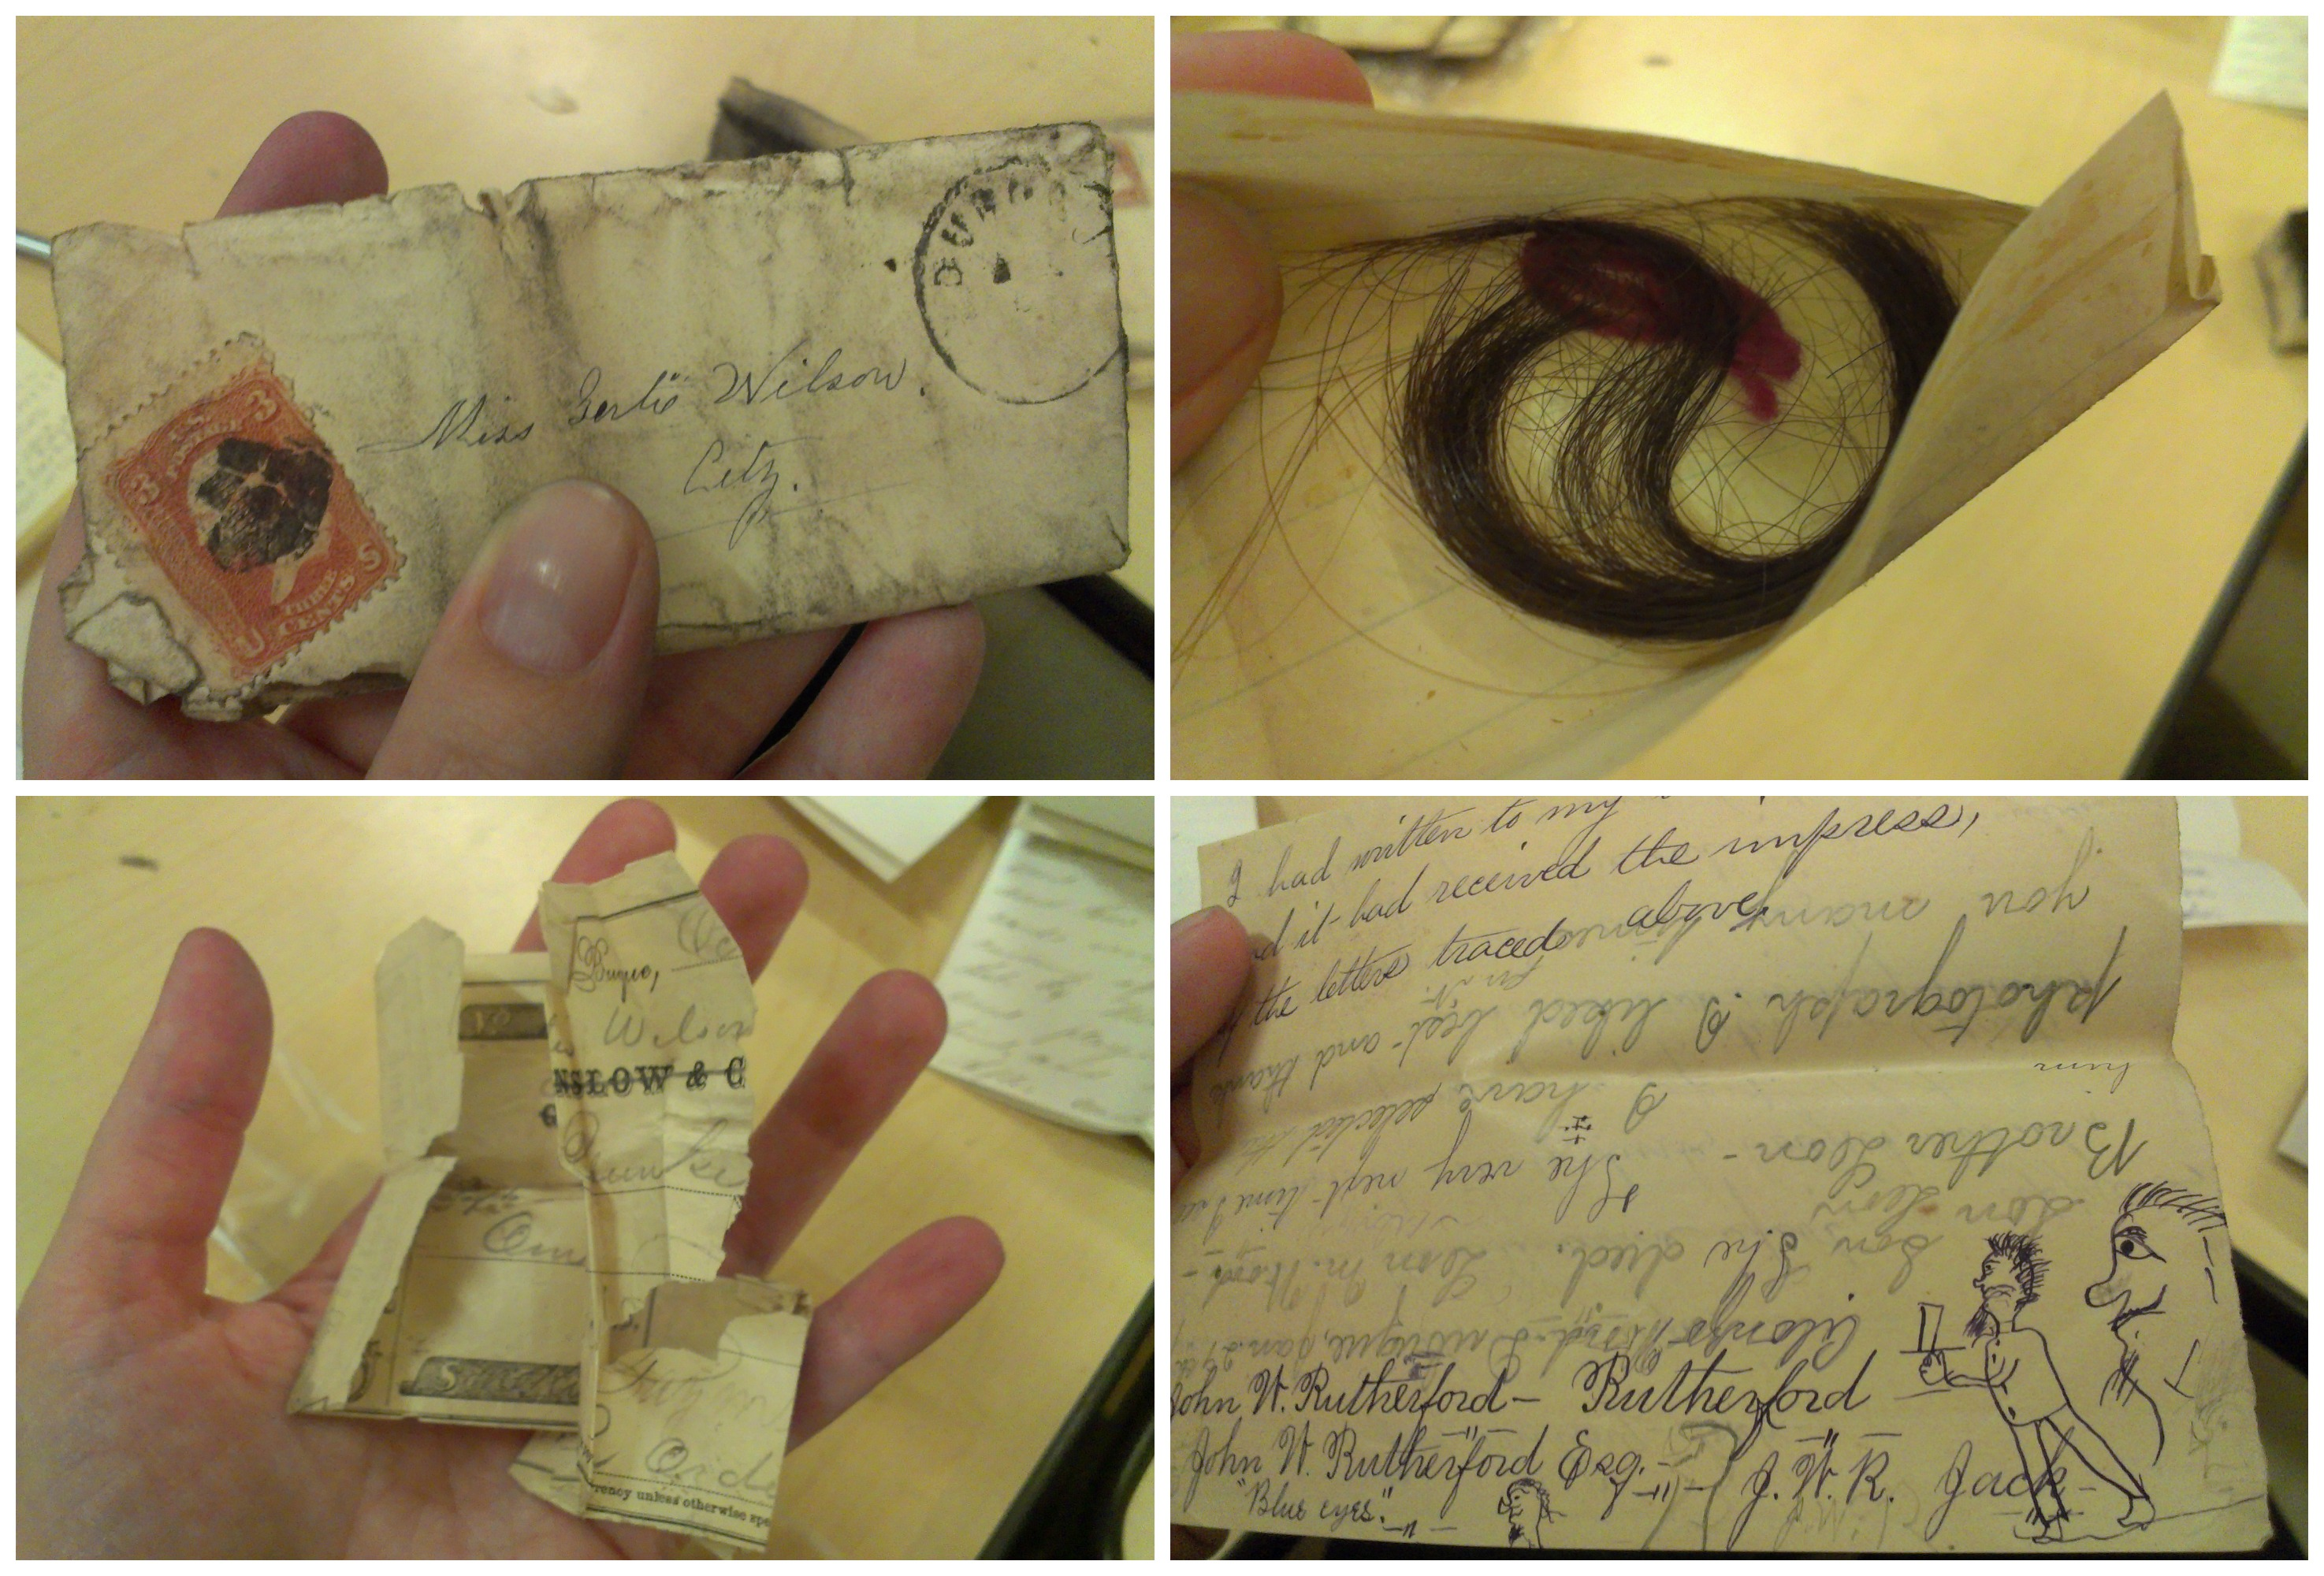 Tiny letters for Gertie from her fellas; a lock of Gertie's hair returned after a break-up; crumpled up love-note; Gertie's doodles of a former suitor's name